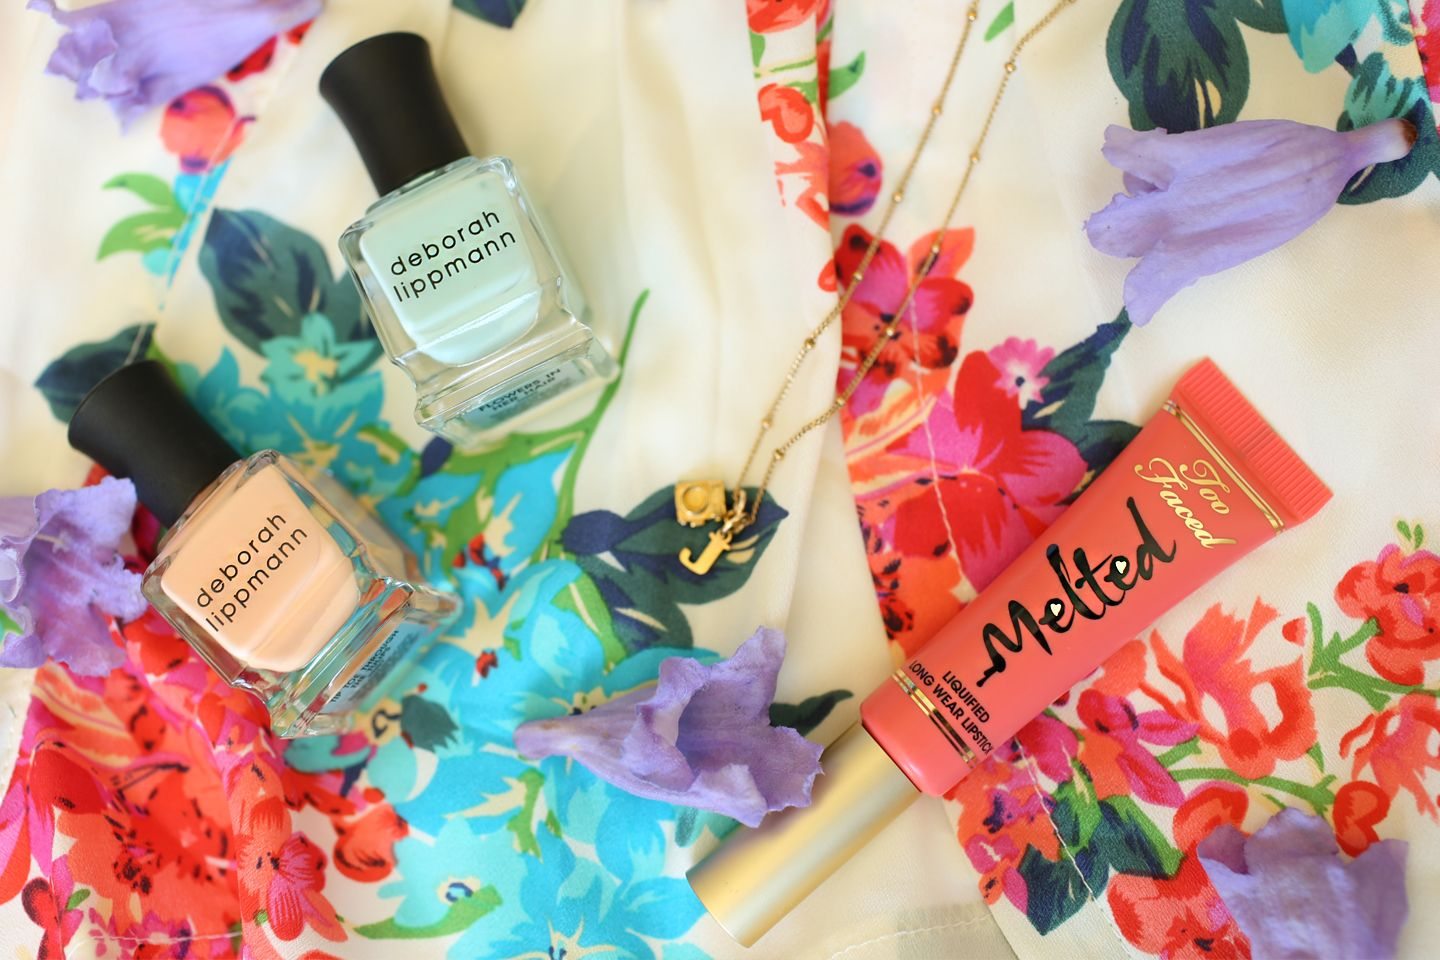 Top Trends for Spring 2014